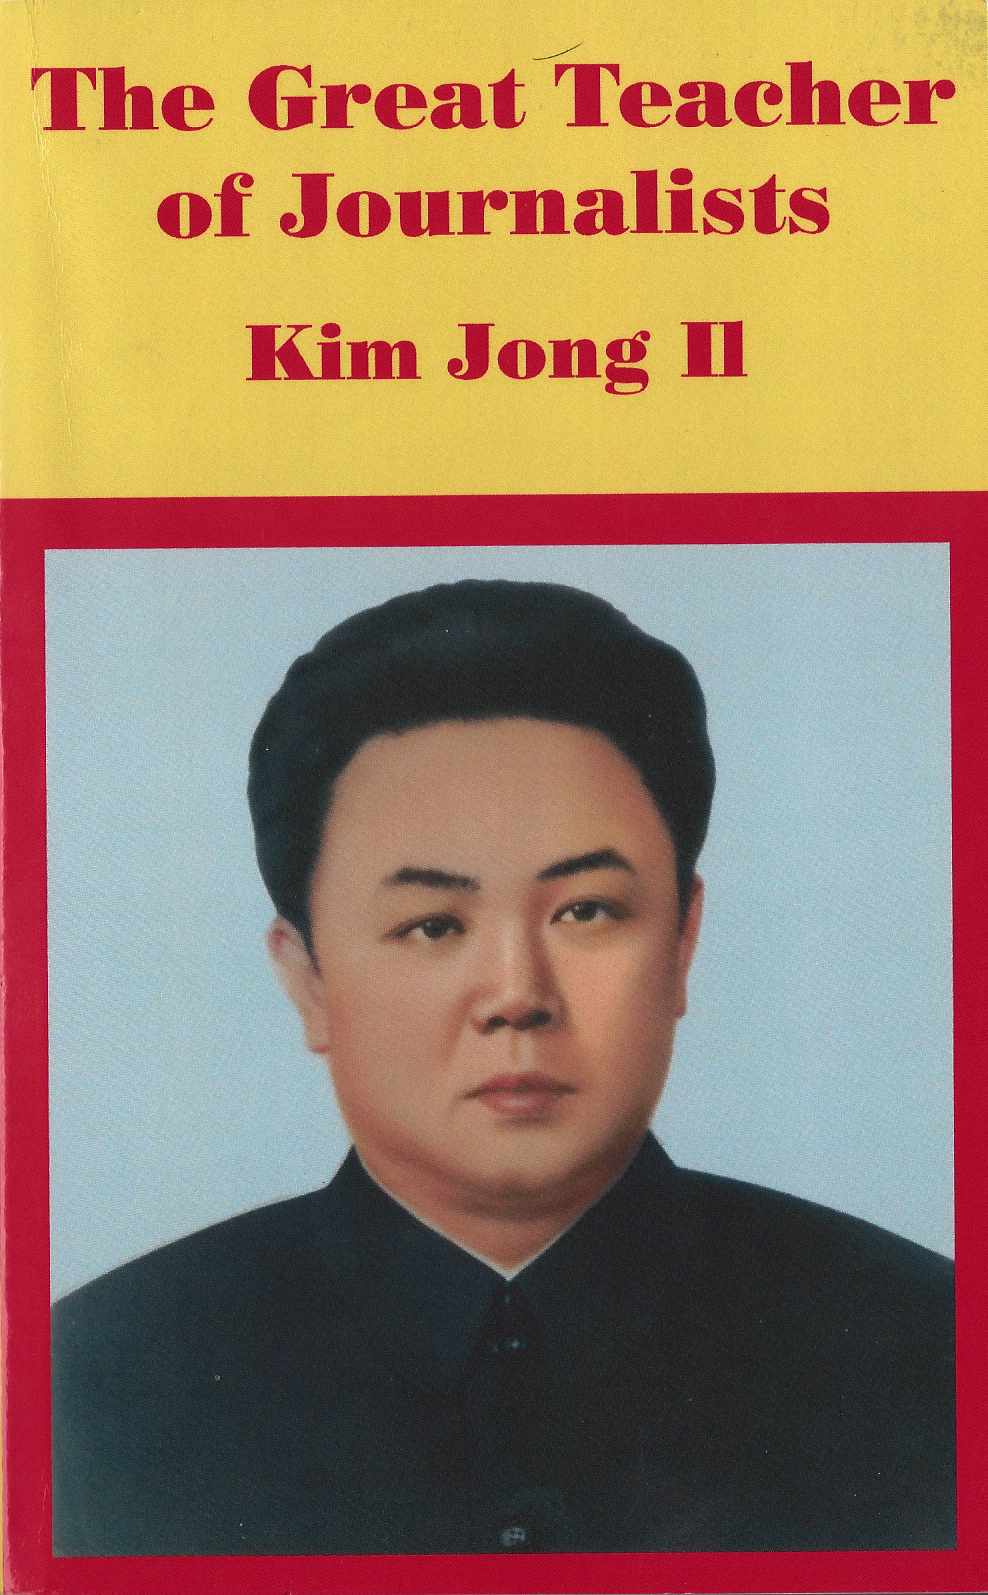 The Great Teacher of Journalists Kim Jong-Il.jpg